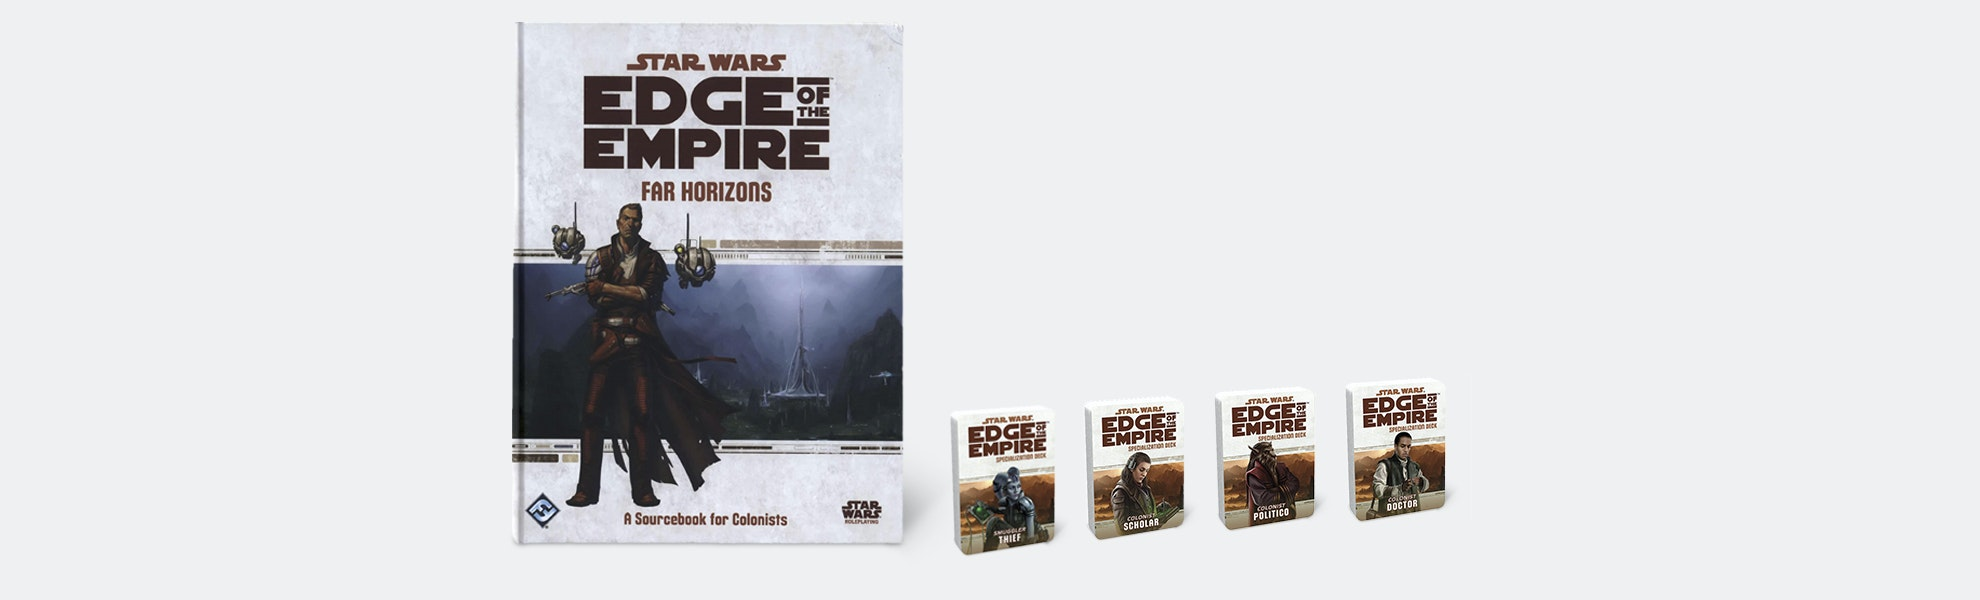 Star Wars: Edge of the Empire RPG Bundle